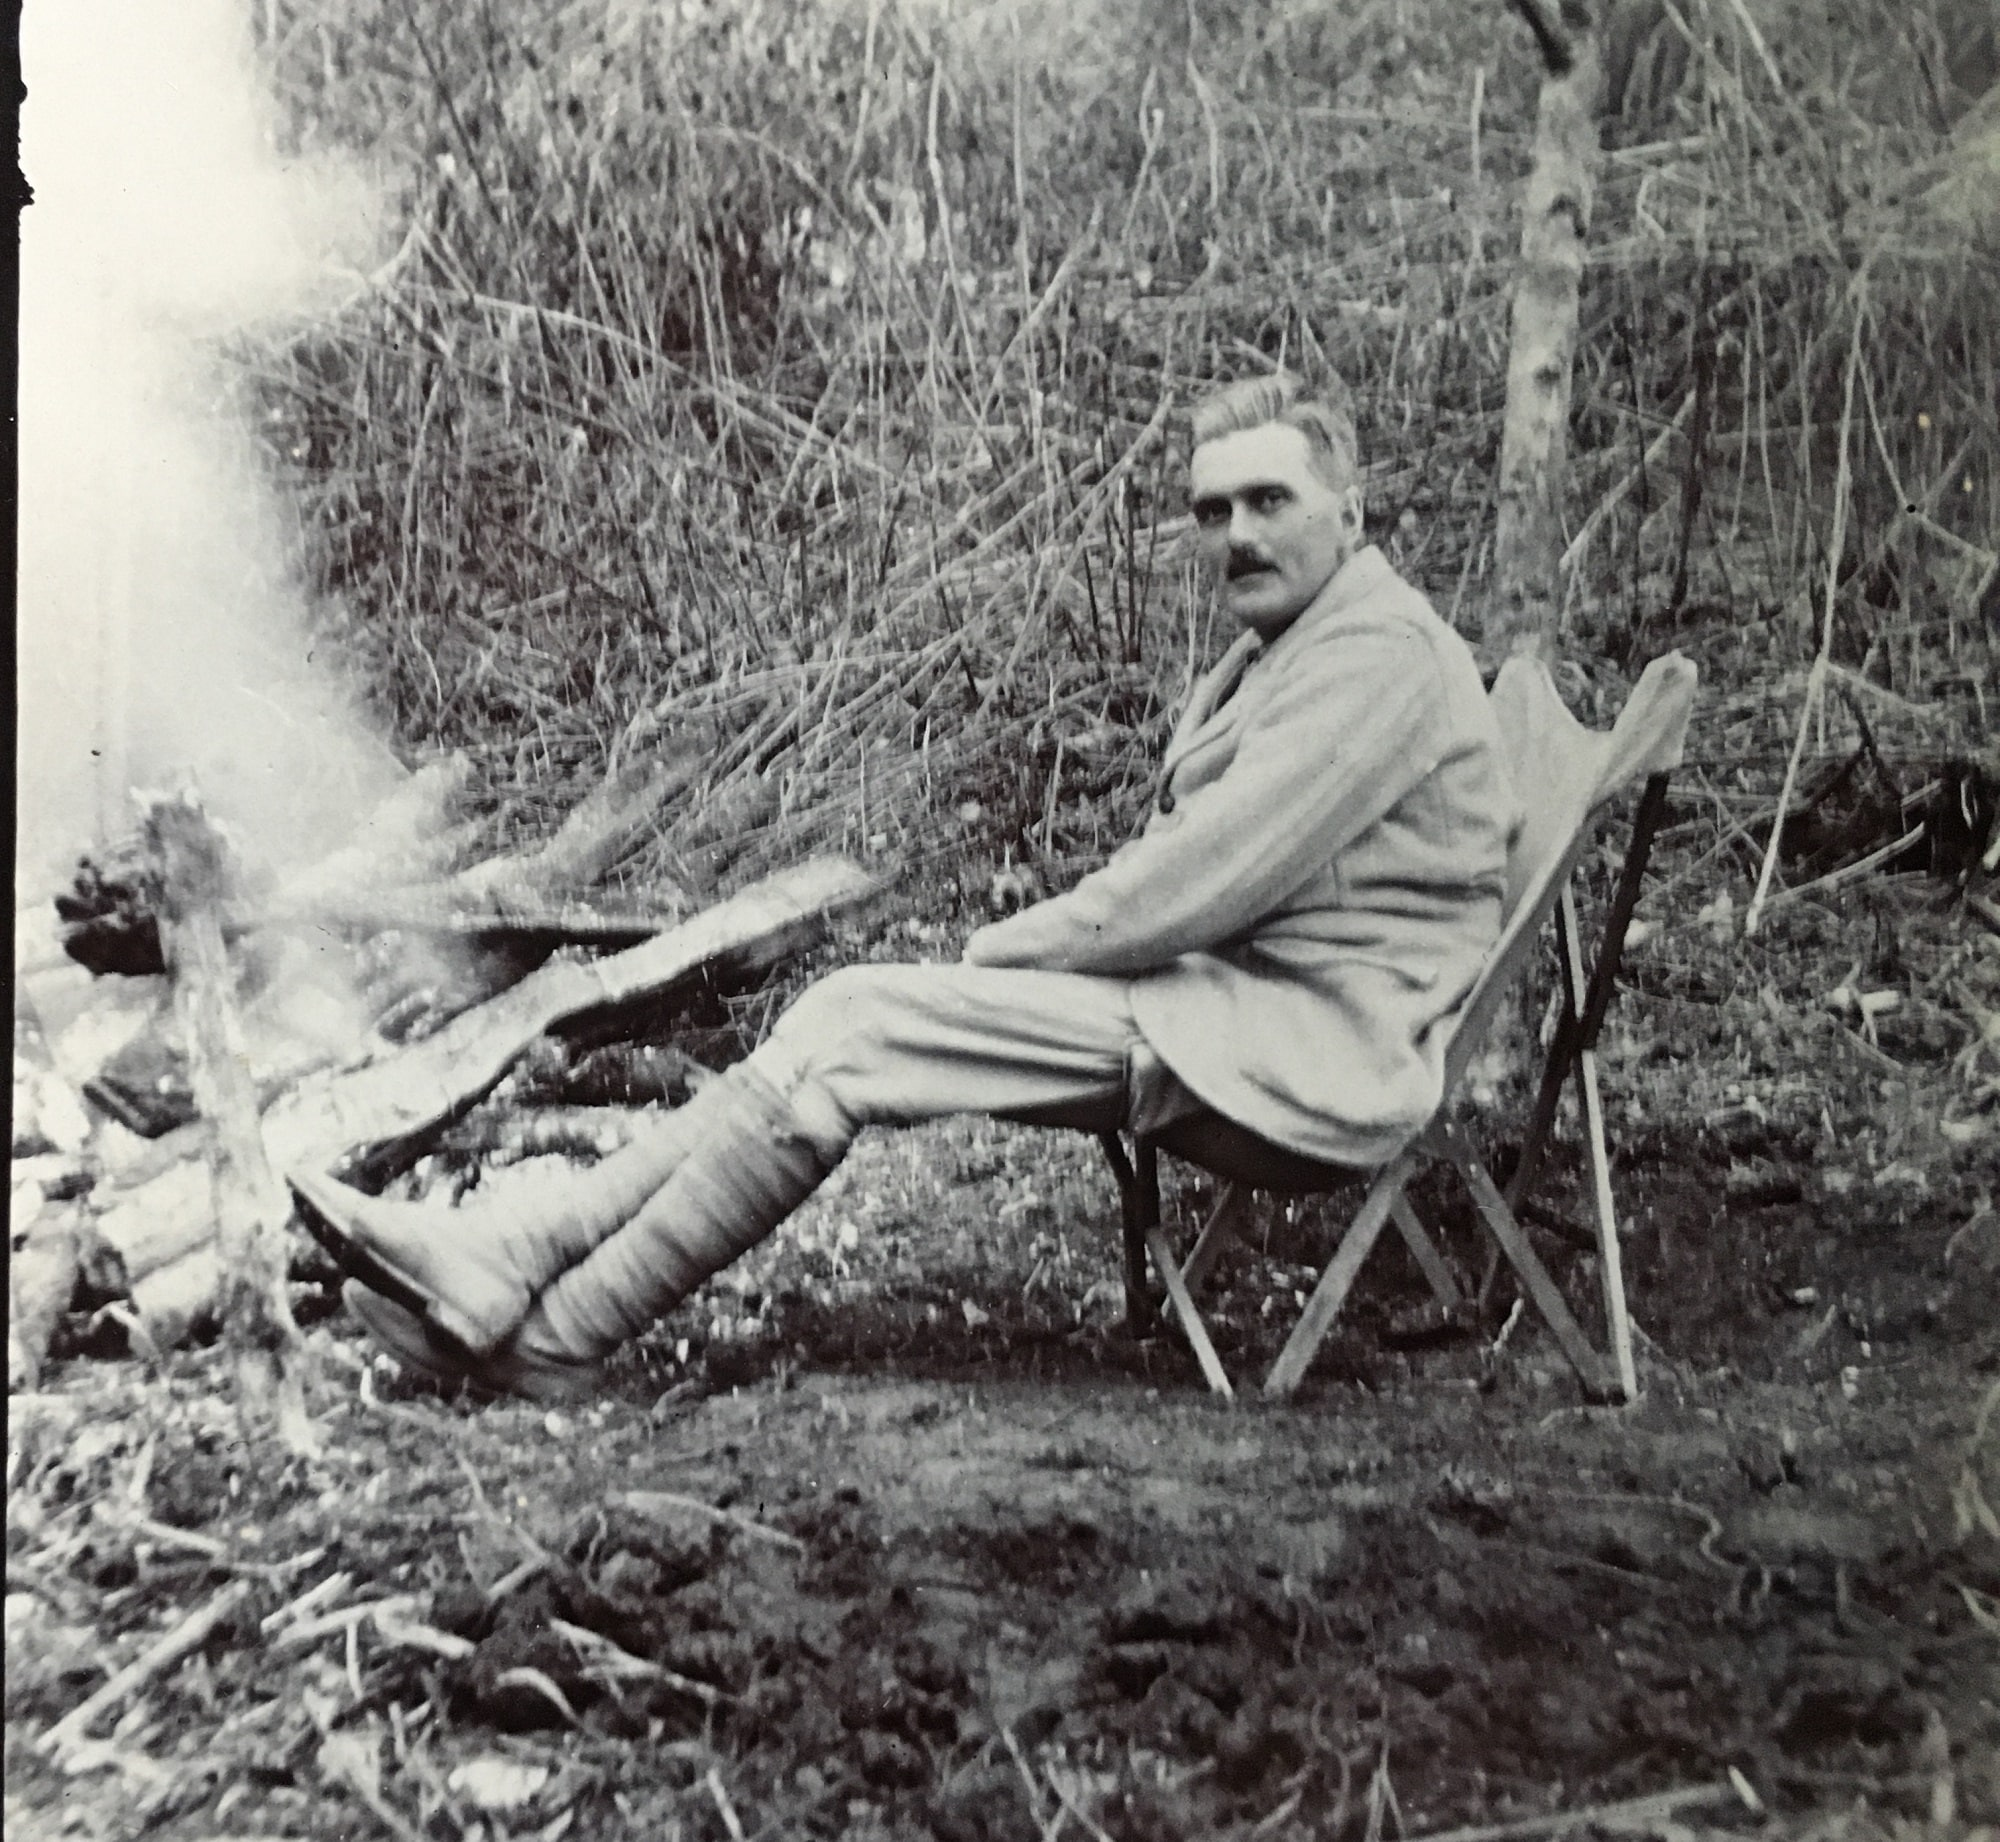 Dr Ernest Tooke Jameson during an expedition around 1920